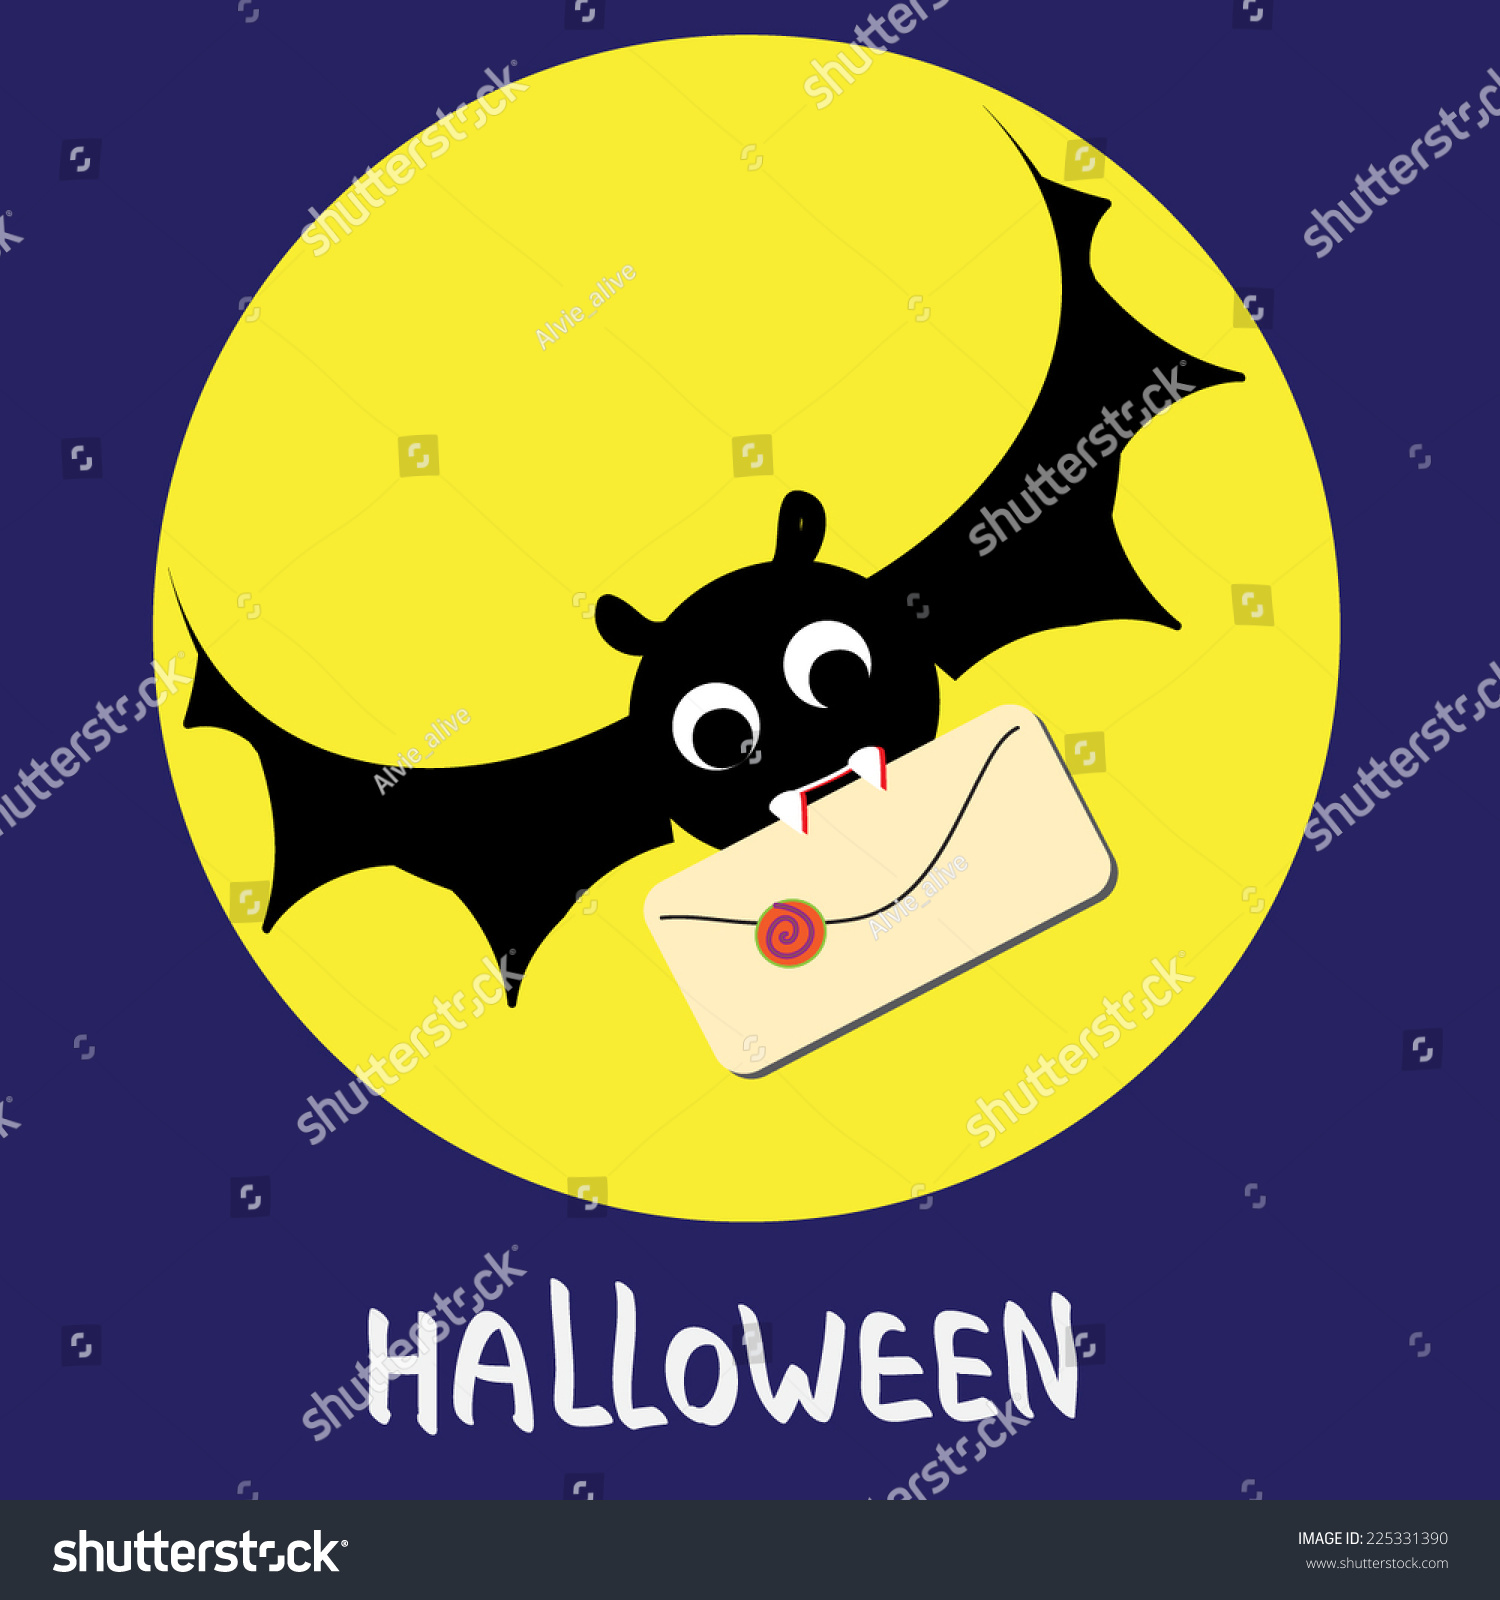 Halloween Mail Delivery Cute Illustration Dracula Stock Vector